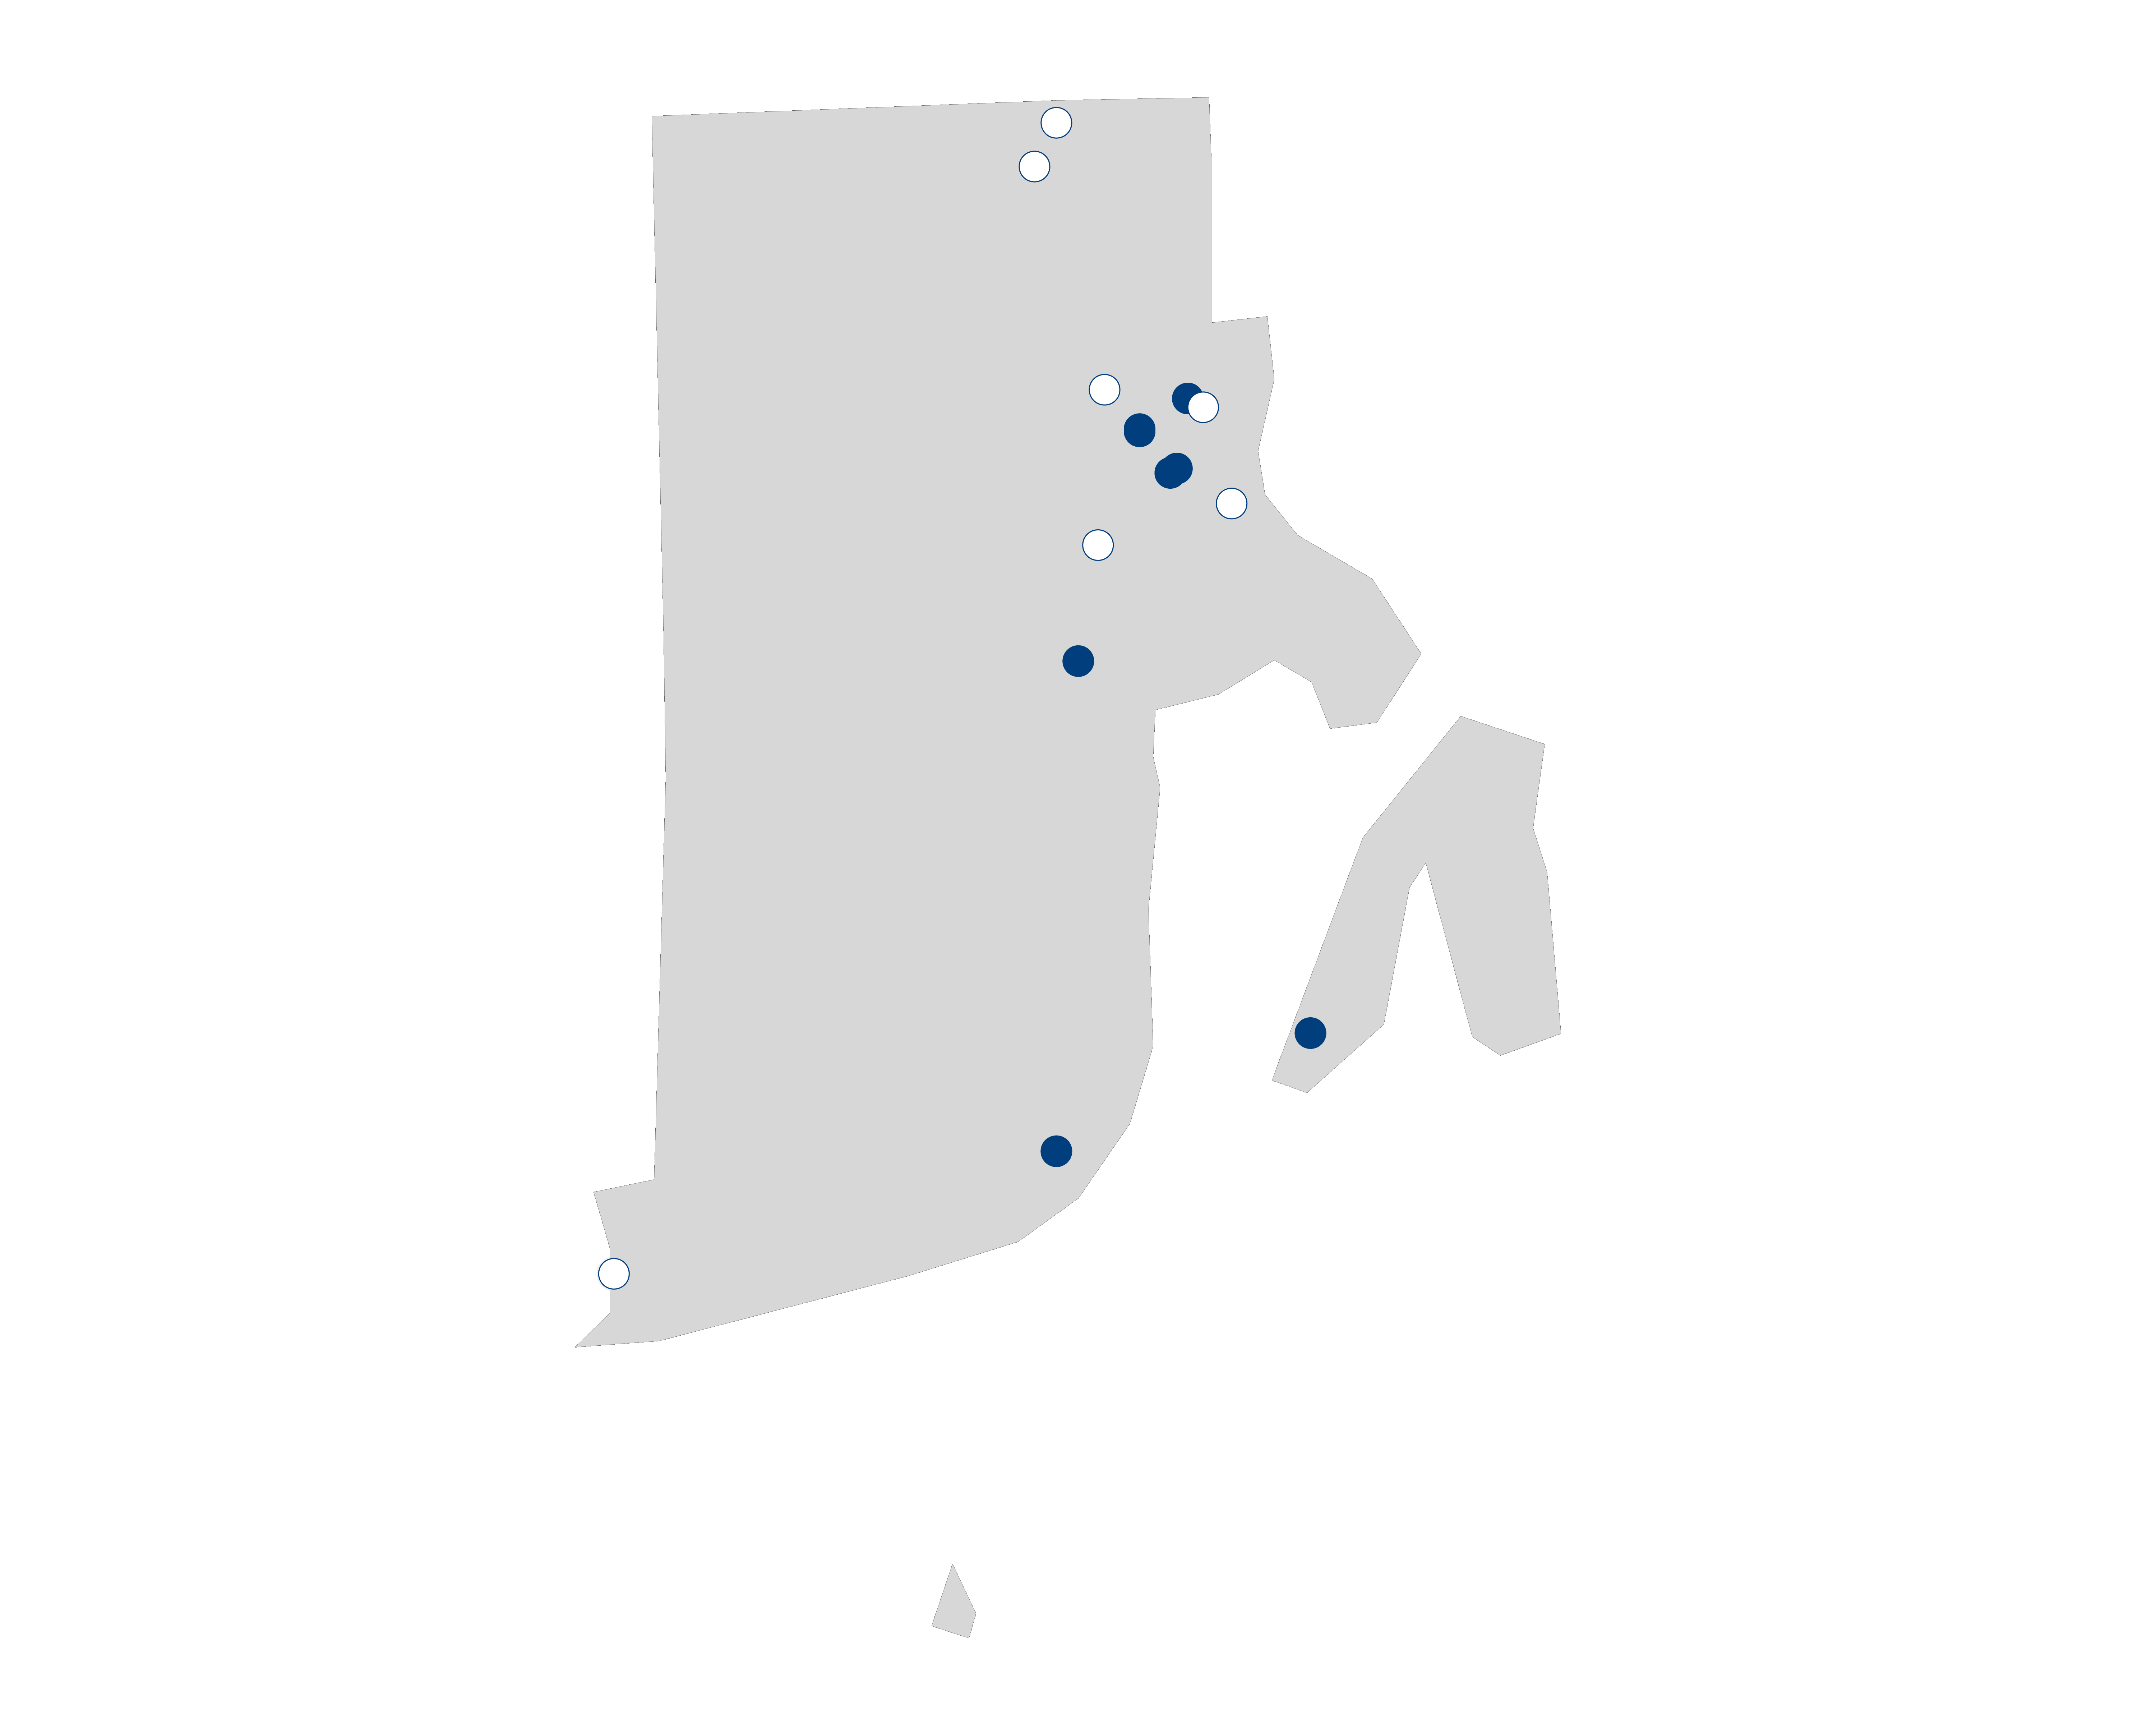 hospital palliative care map for Rhode Island